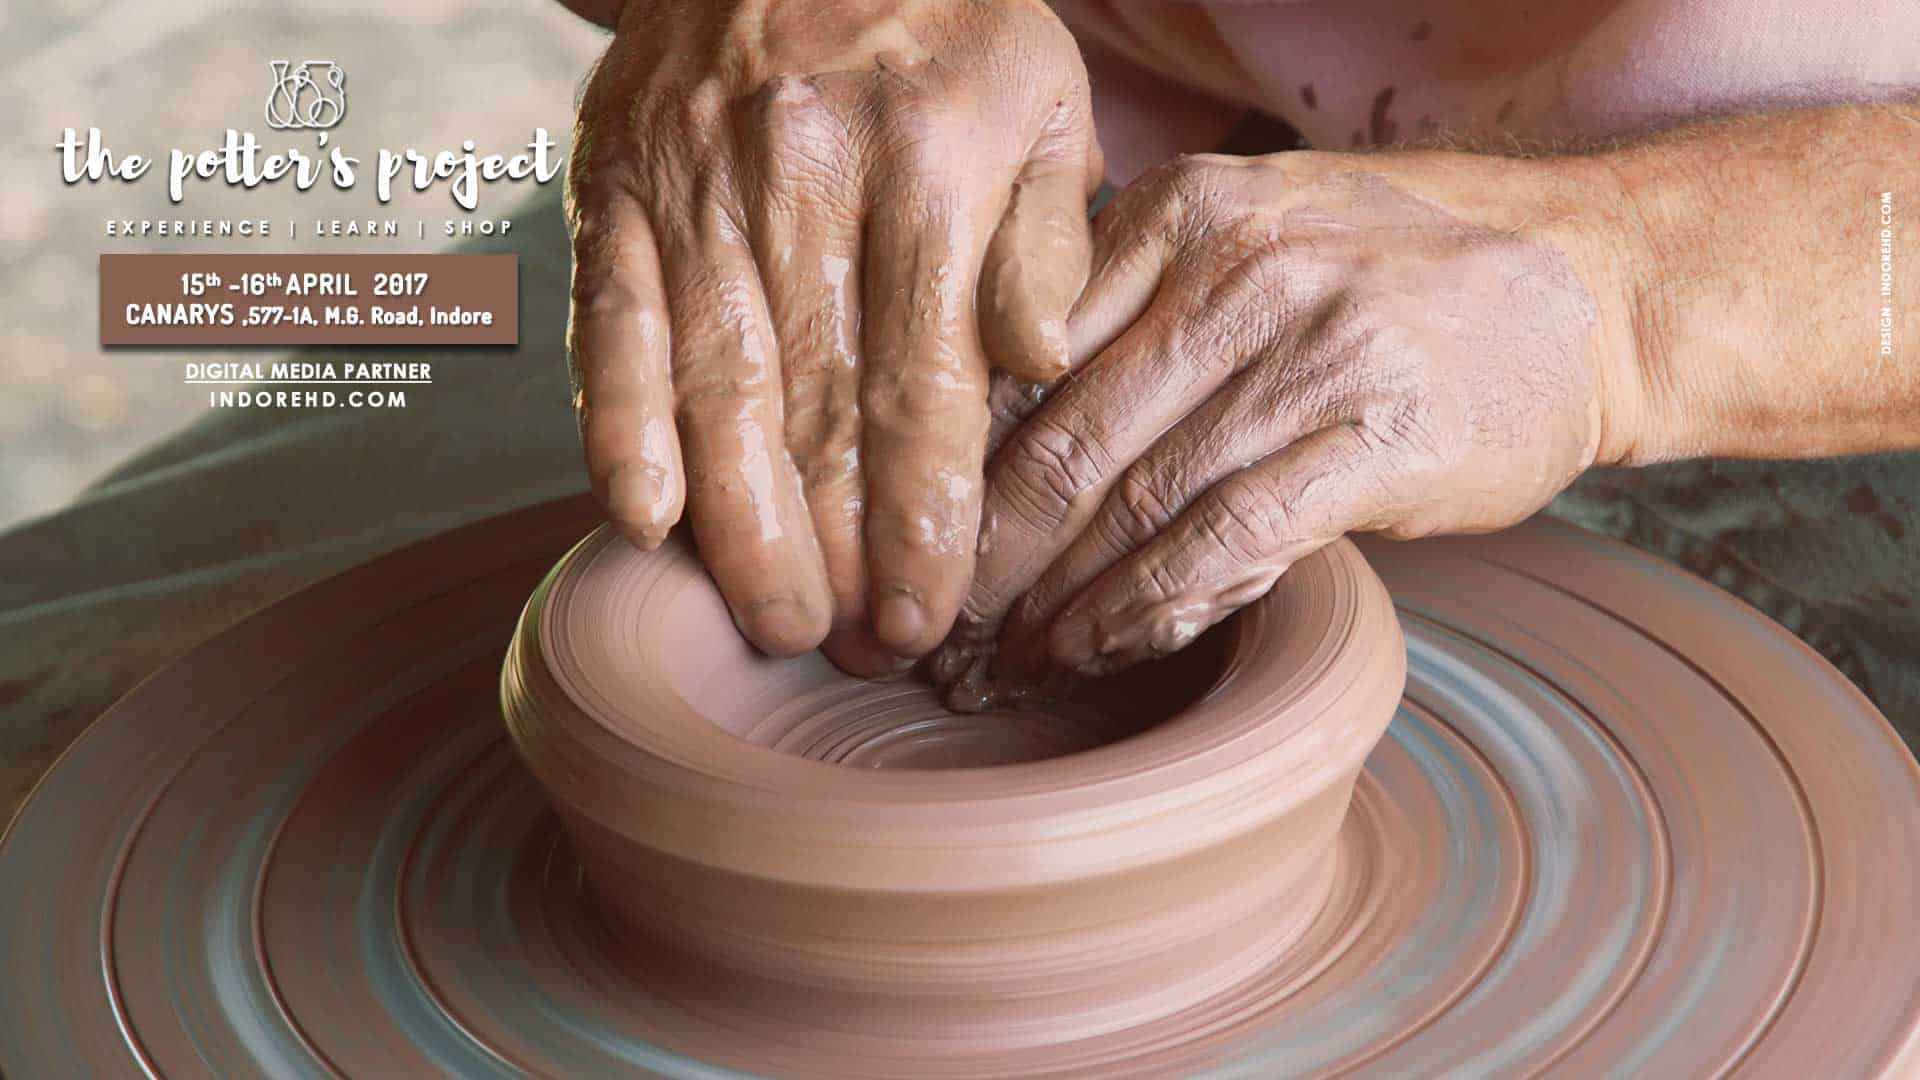 The-Potters-project-event-indore-indorehd